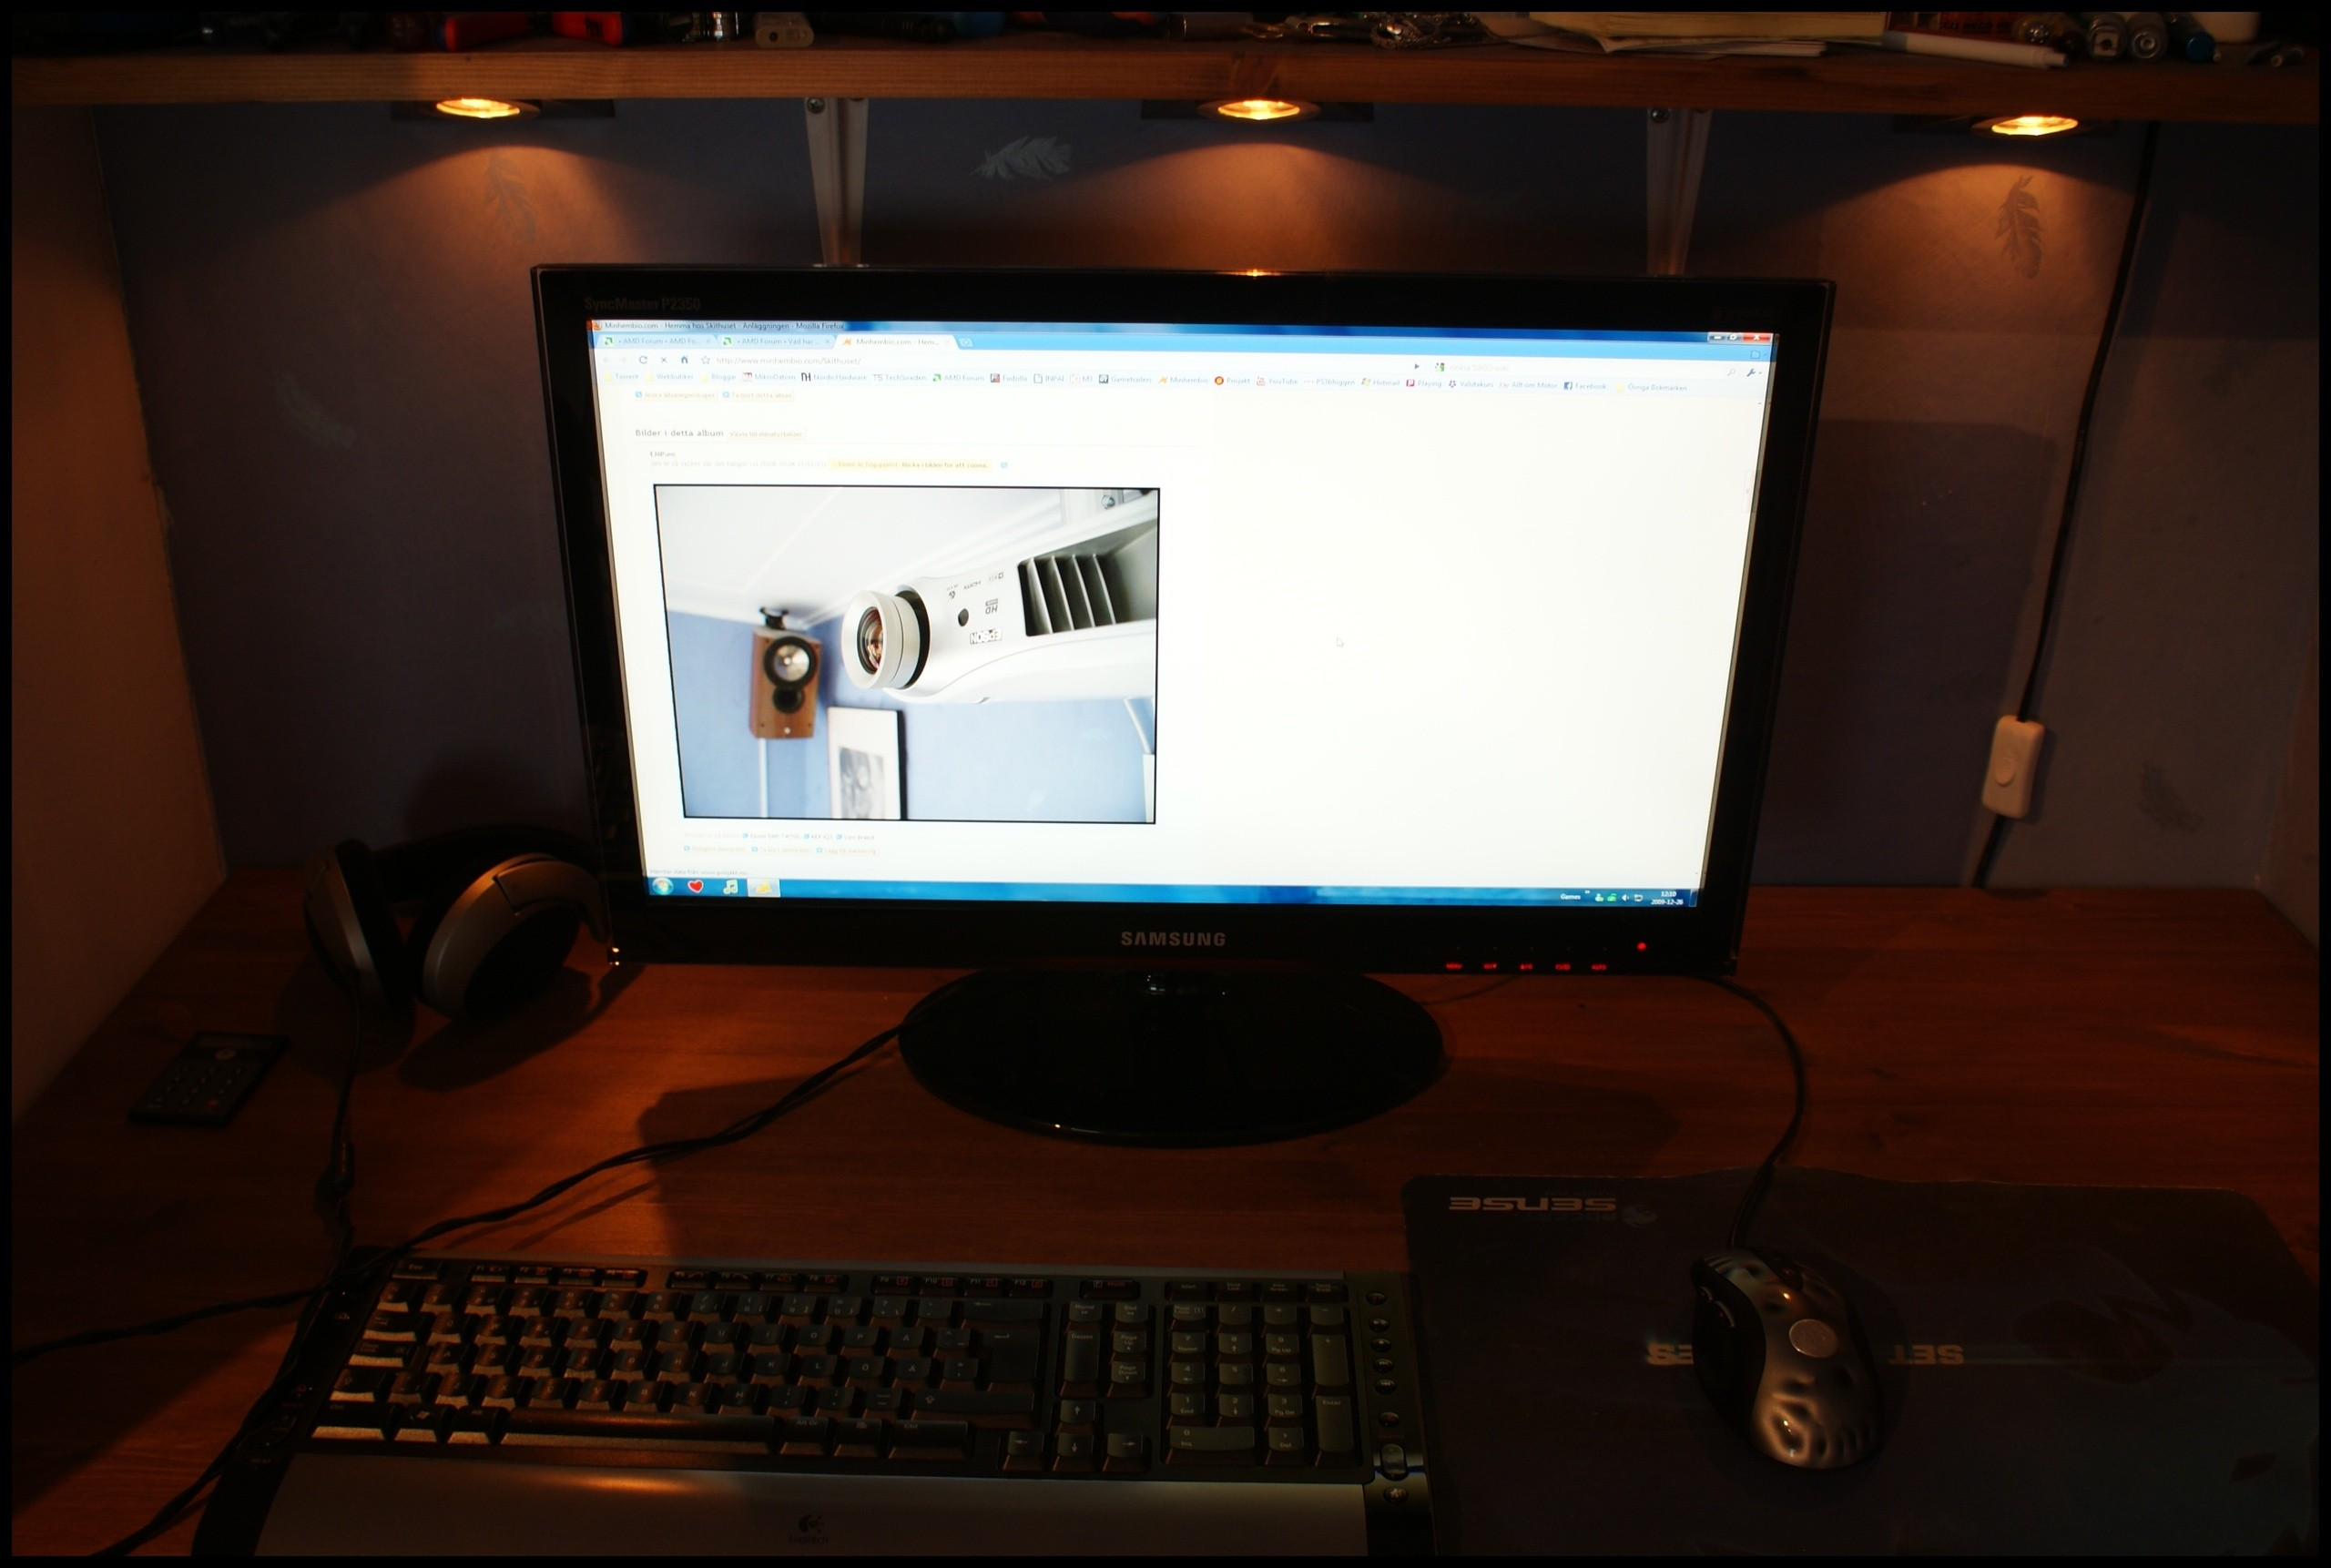 Samsung Syncmaster P2350 Driver Download